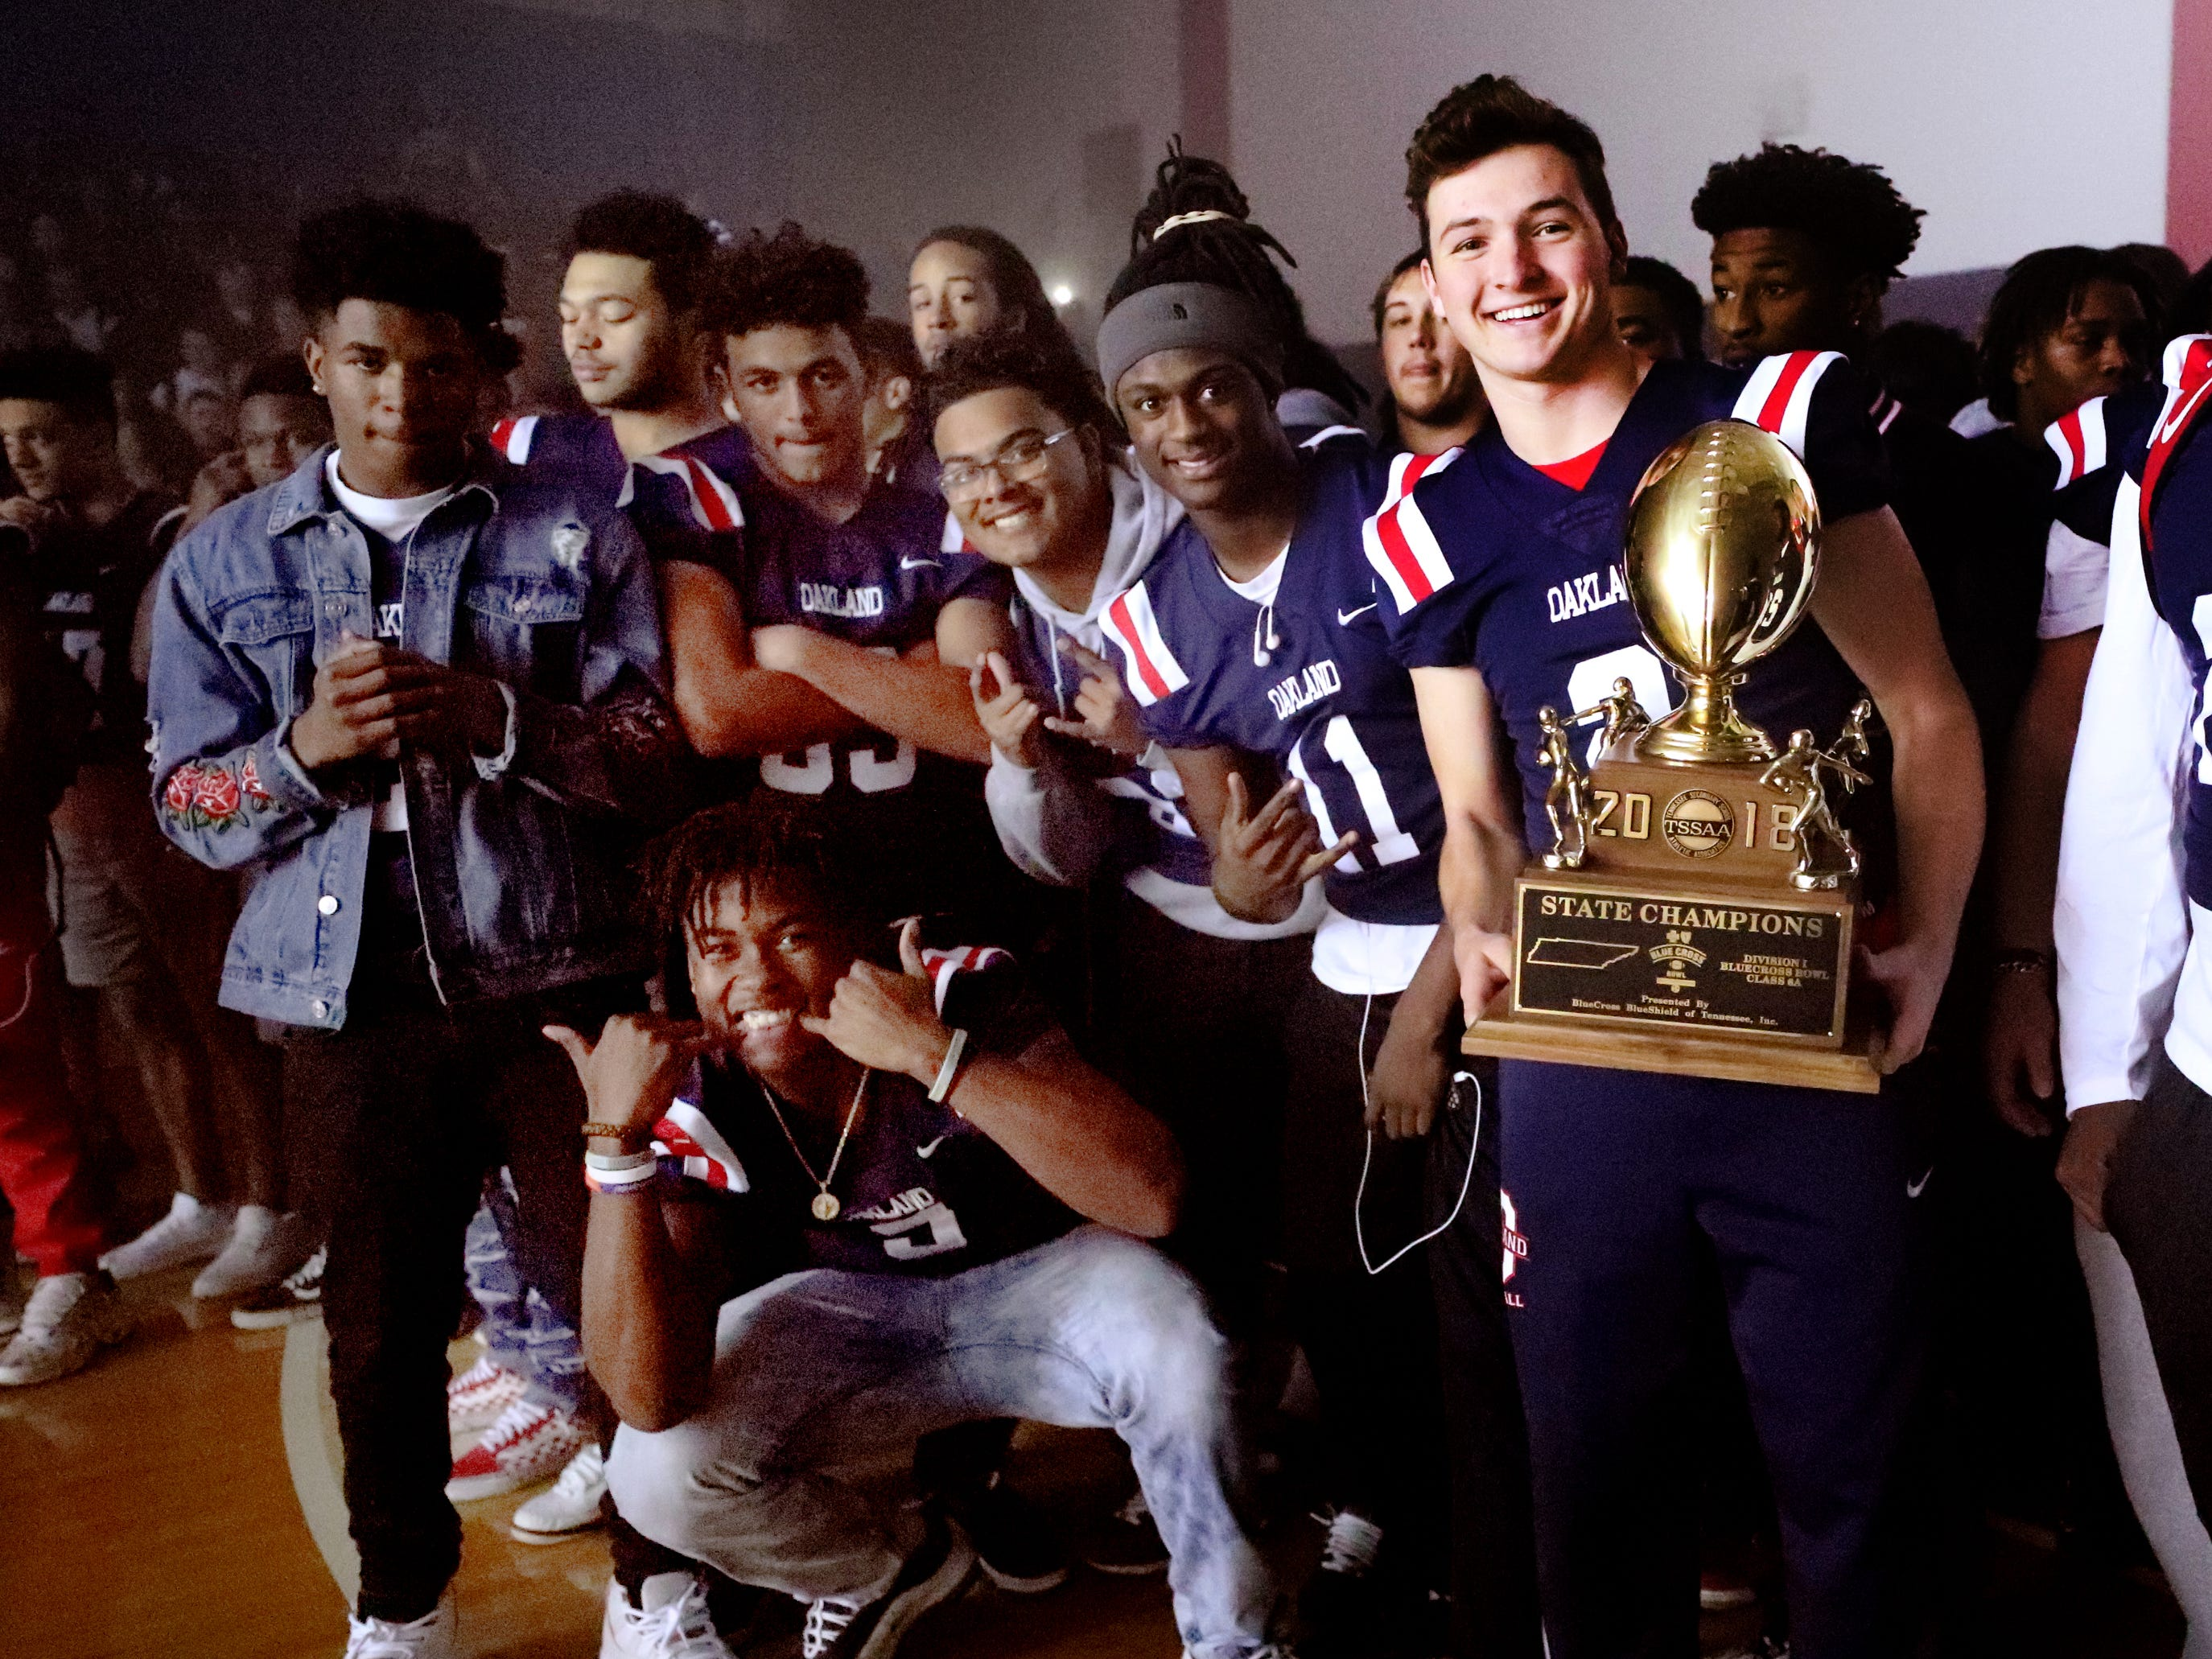 Oakland football players celebrate during a pep rally, on Monday, Dec. 3, 2018 at the school after the football team won the 6A State Championship BlueCross Bowl game against Westhaven on Thursday.